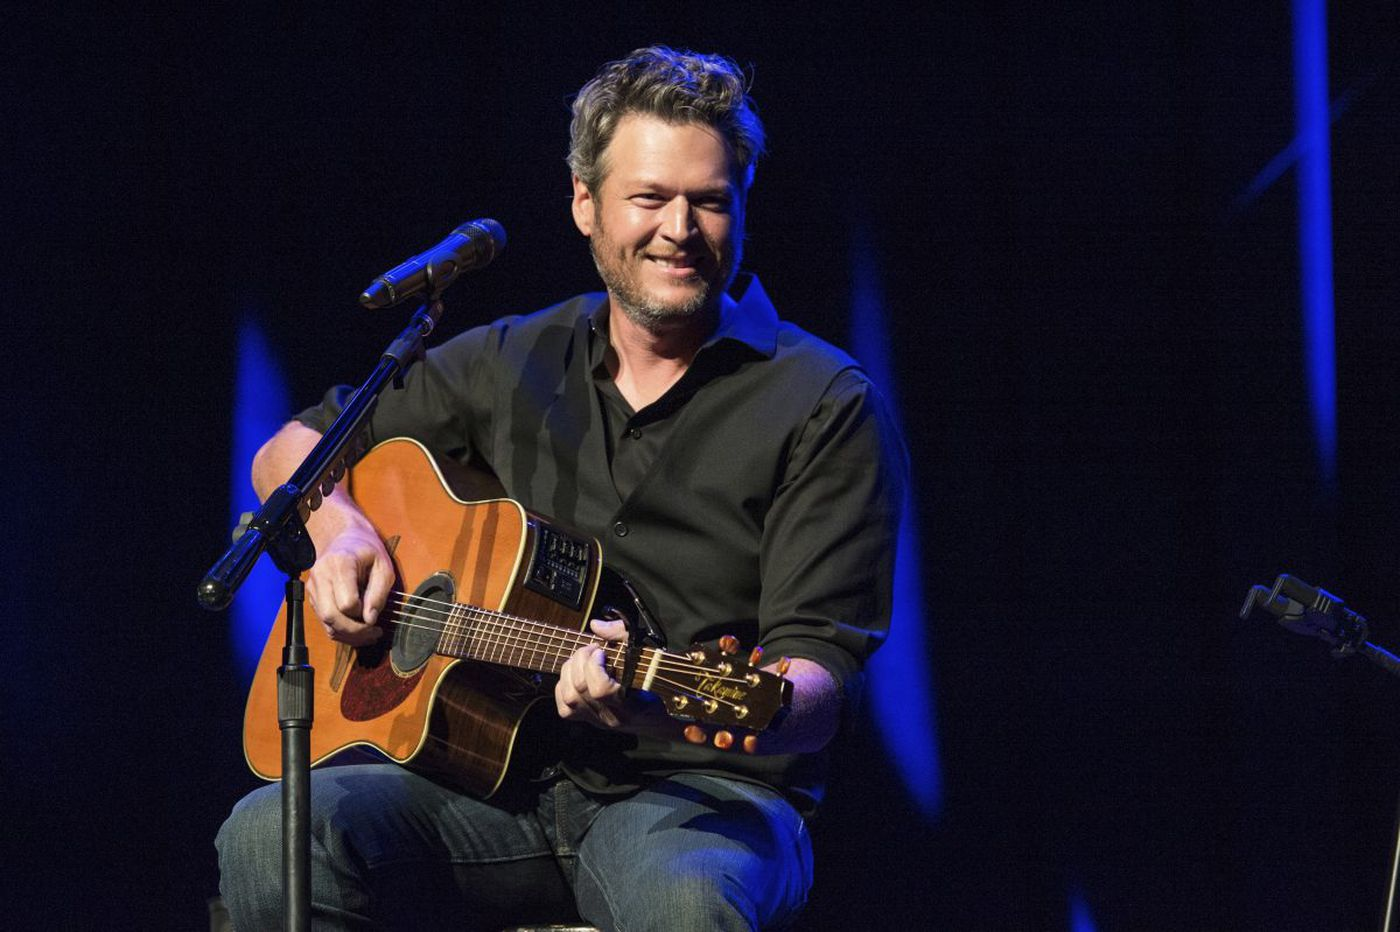 Blake Shelton to sign bottles of vodka in Pa.